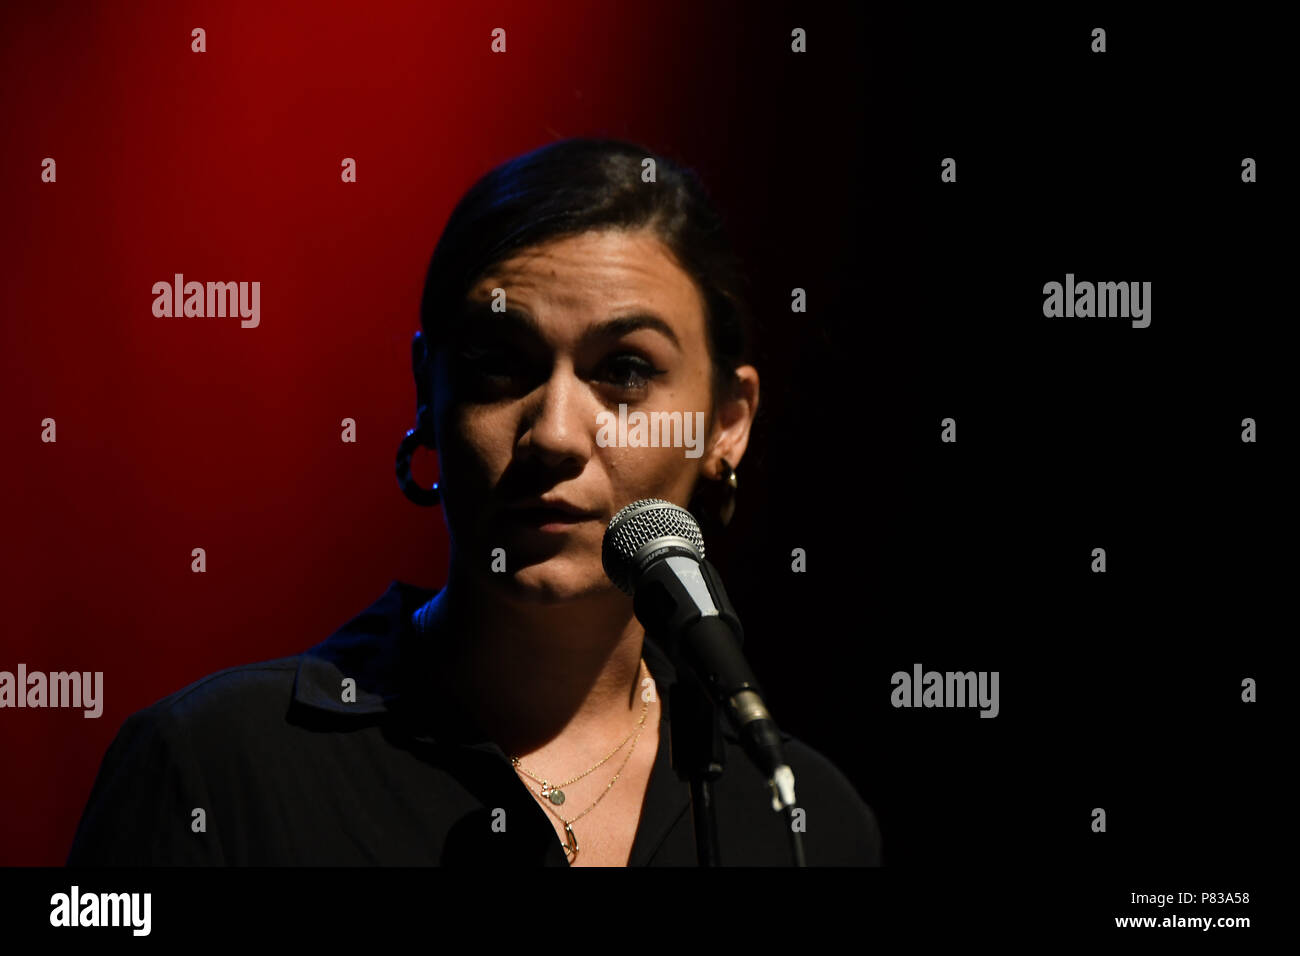 London, UK. 8th July 2018. Nadine Shah is a musician and mental health campaigner preforms at the Just Say No - Artists Against Trump & War host by Stop the War Coalition, Trump is not welcome in the UK at The Shaw Theatre on 8th July 2018. Credit: Picture Capital/Alamy Live News Stock Photo